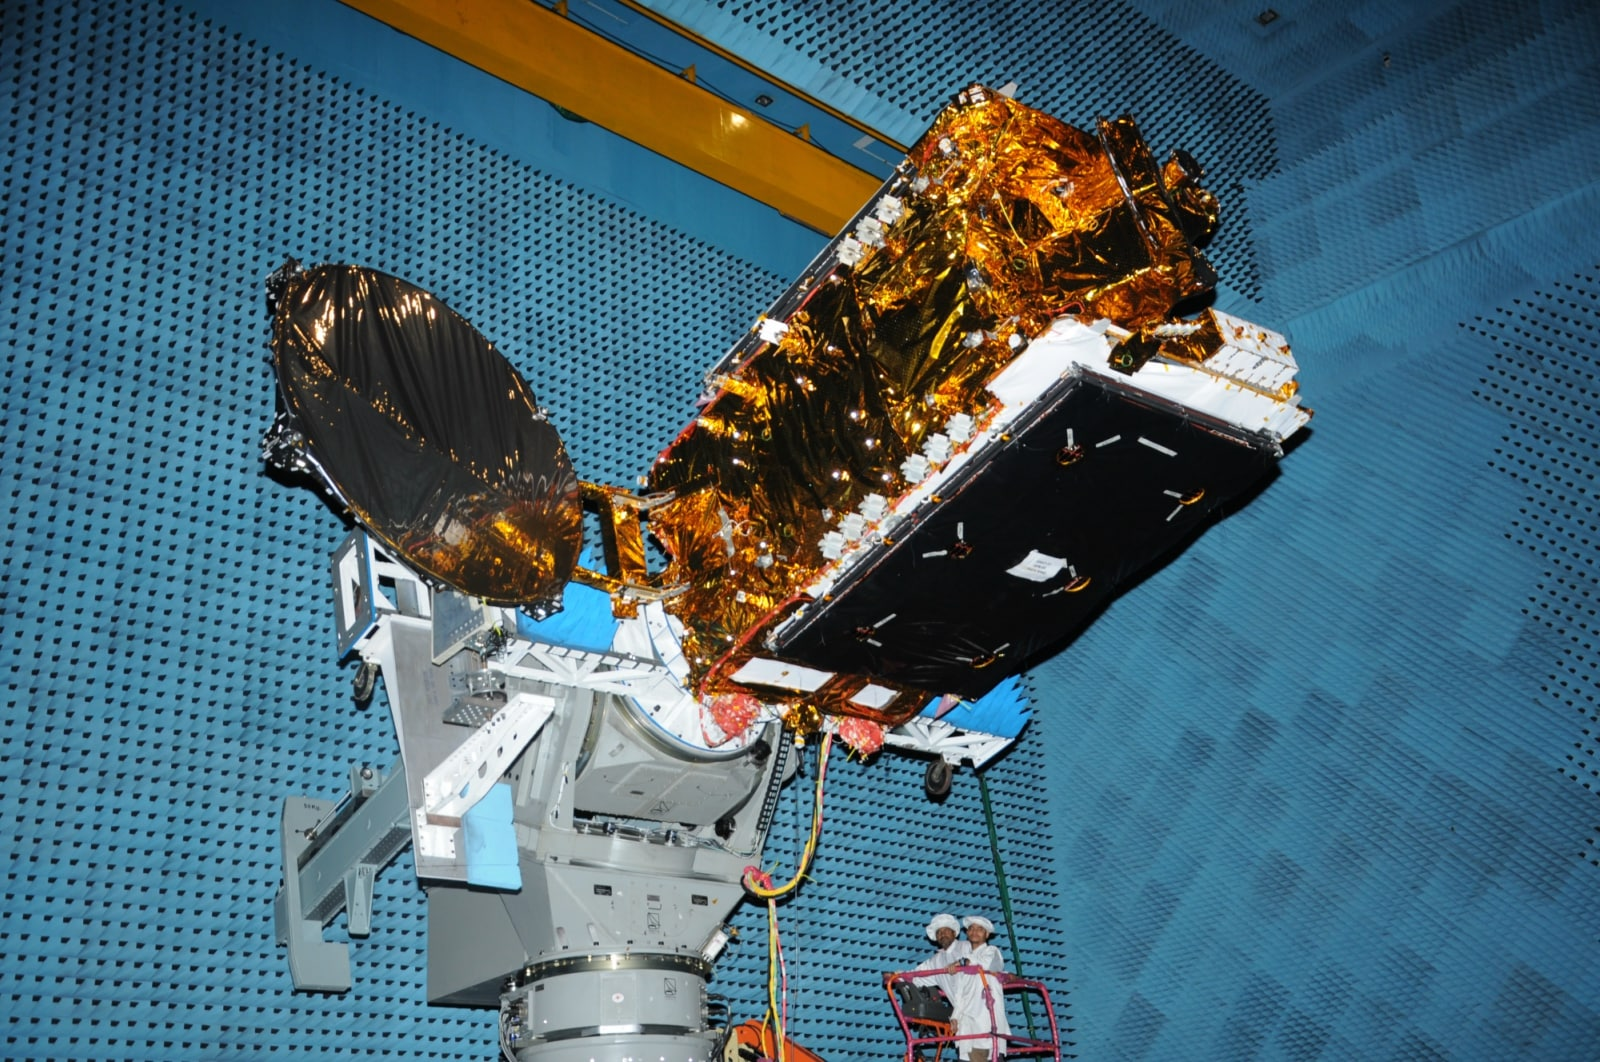 India's telecommunication satellite, GSAT-31 was successfully launched on February 06, 2019 from Kourou launch base, French Guiana by Ariane-5 VA-247.